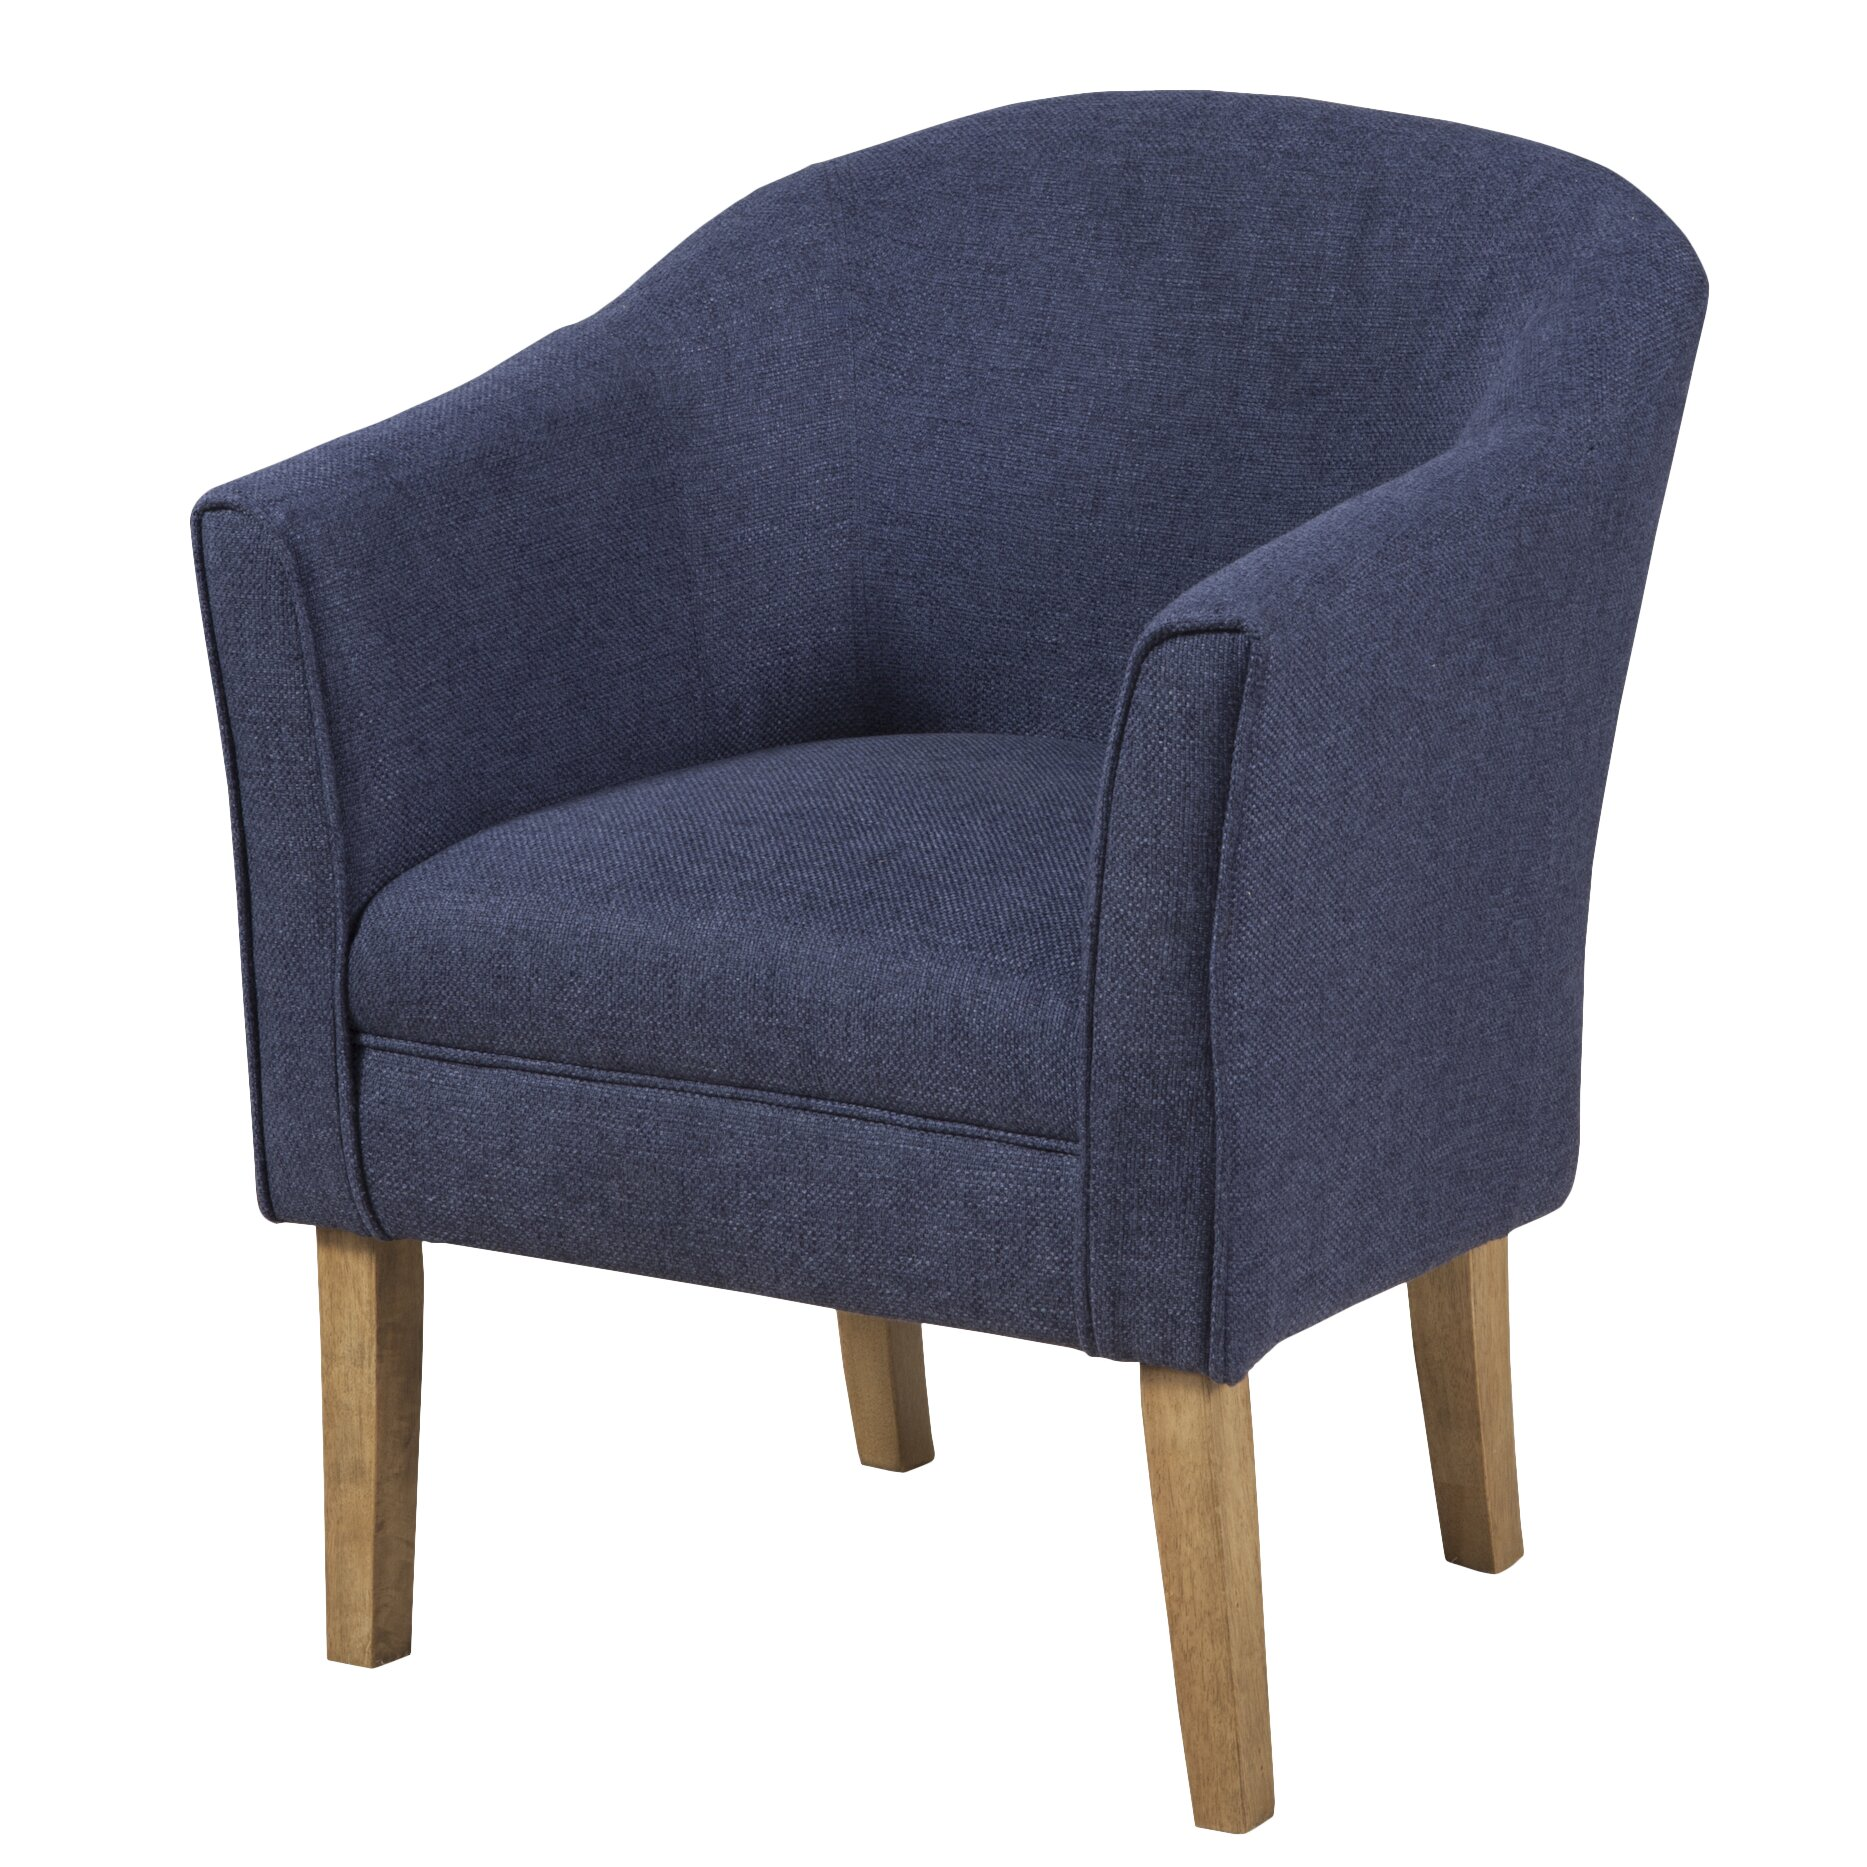 Warefair Com: HomePop Upholstered Barrel Chair & Reviews